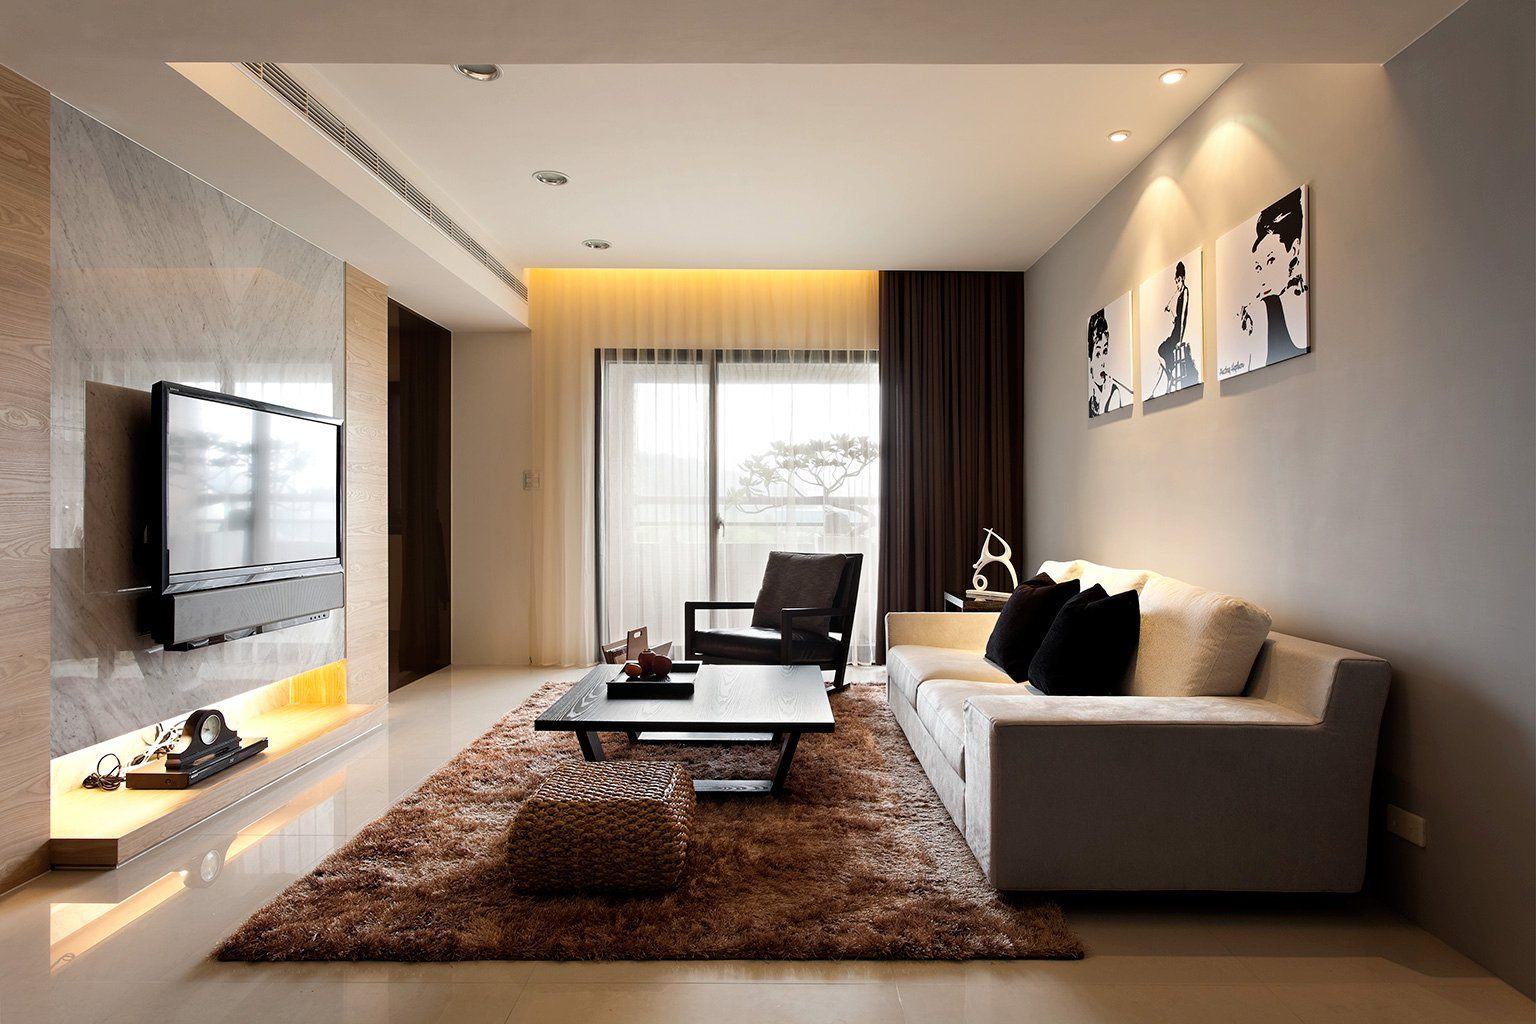 Living Room Design Contemporary Prepossessing Fascinating Decoration Ideas For Small Living Room With Brown Design Ideas